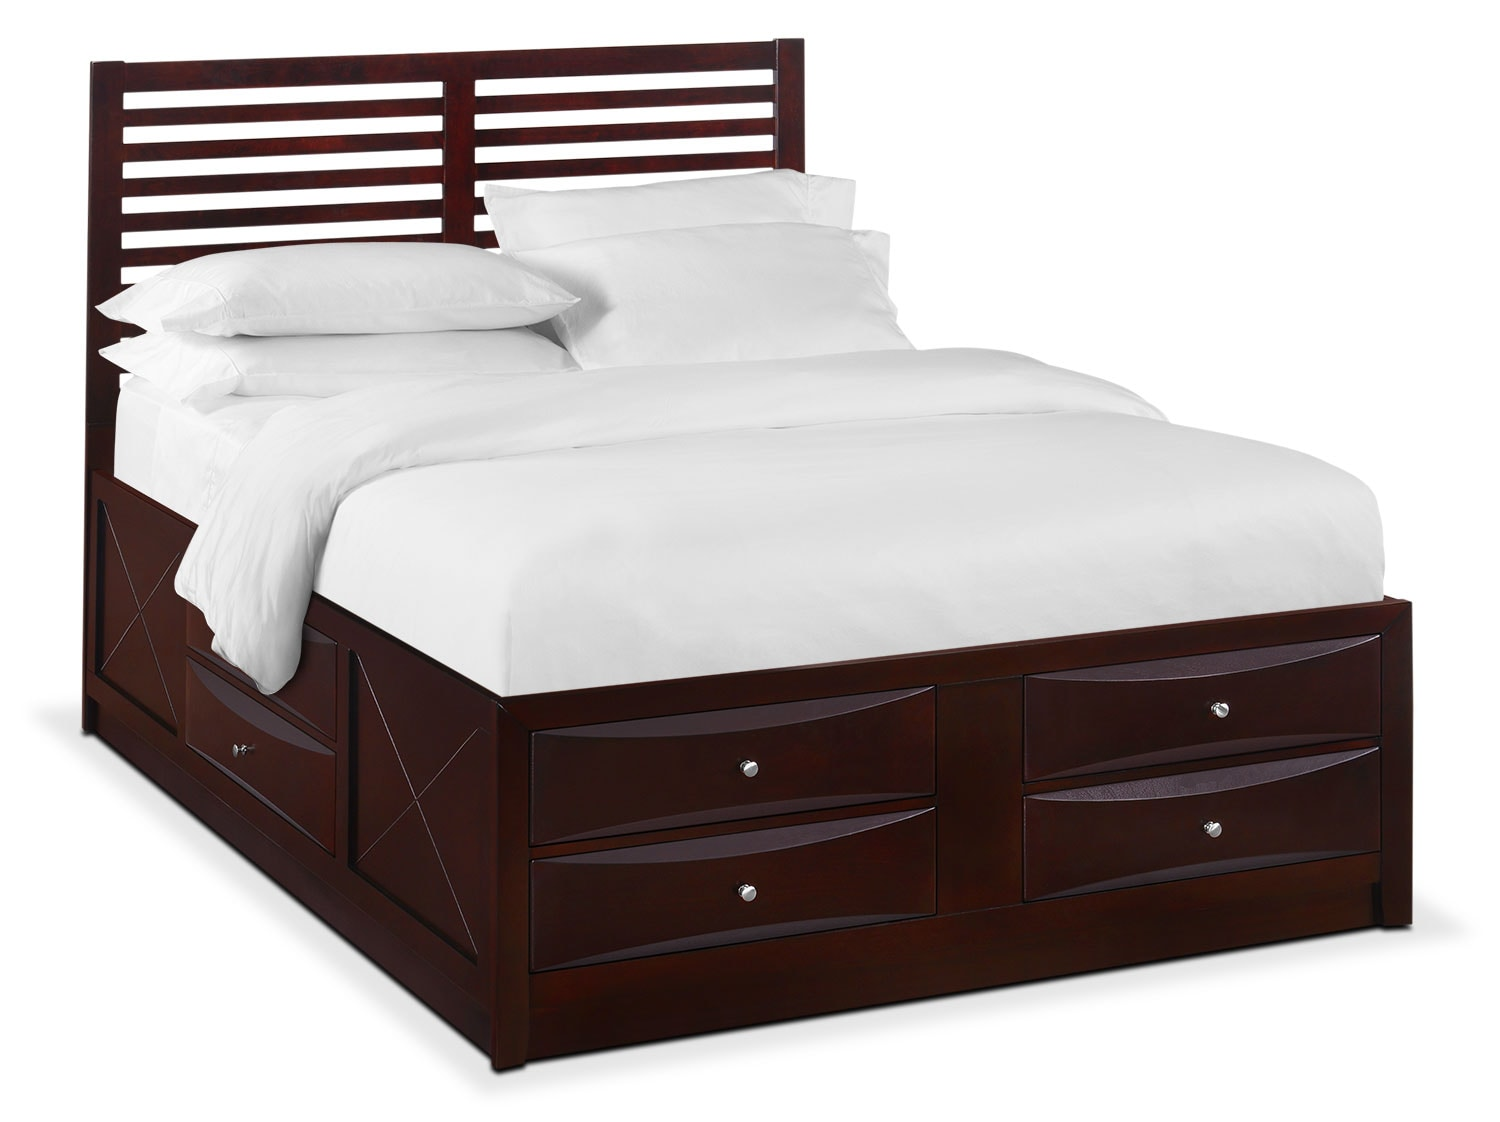 Braden Queen Slat Bed with Storage - Merlot